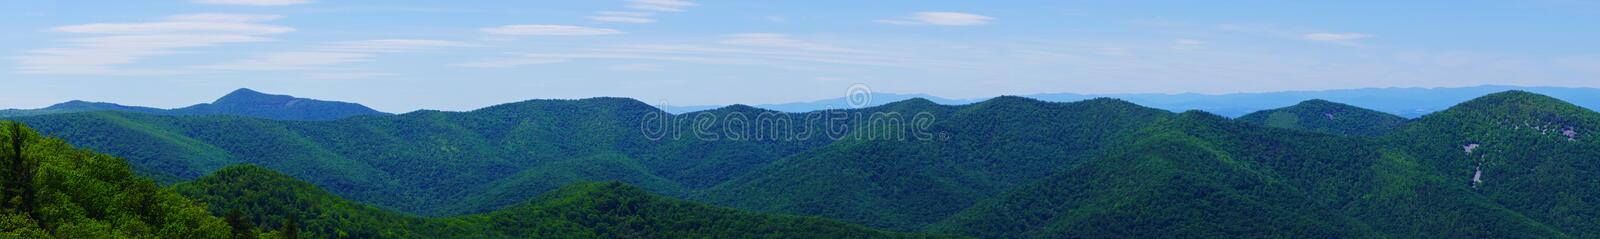 Mountain side royalty free stock photography